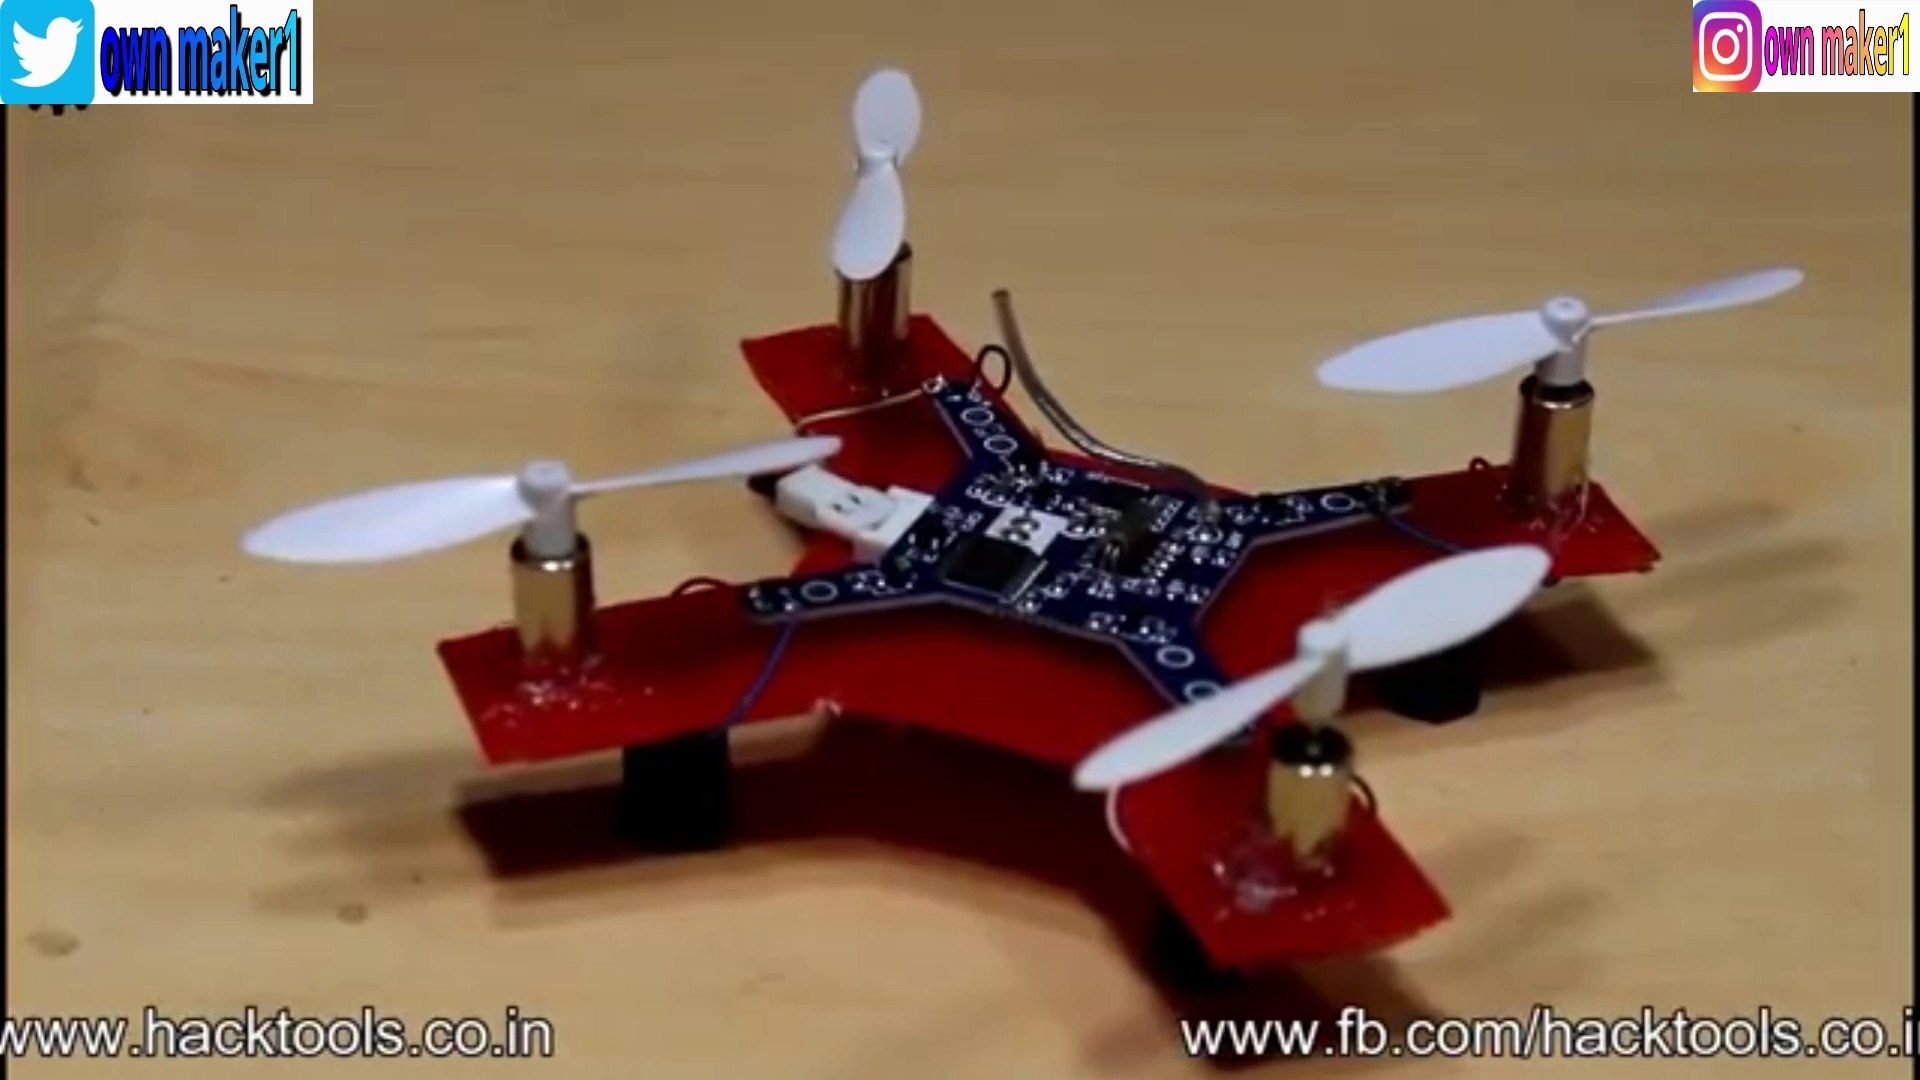 how to make a mini drone at homw by own maker1